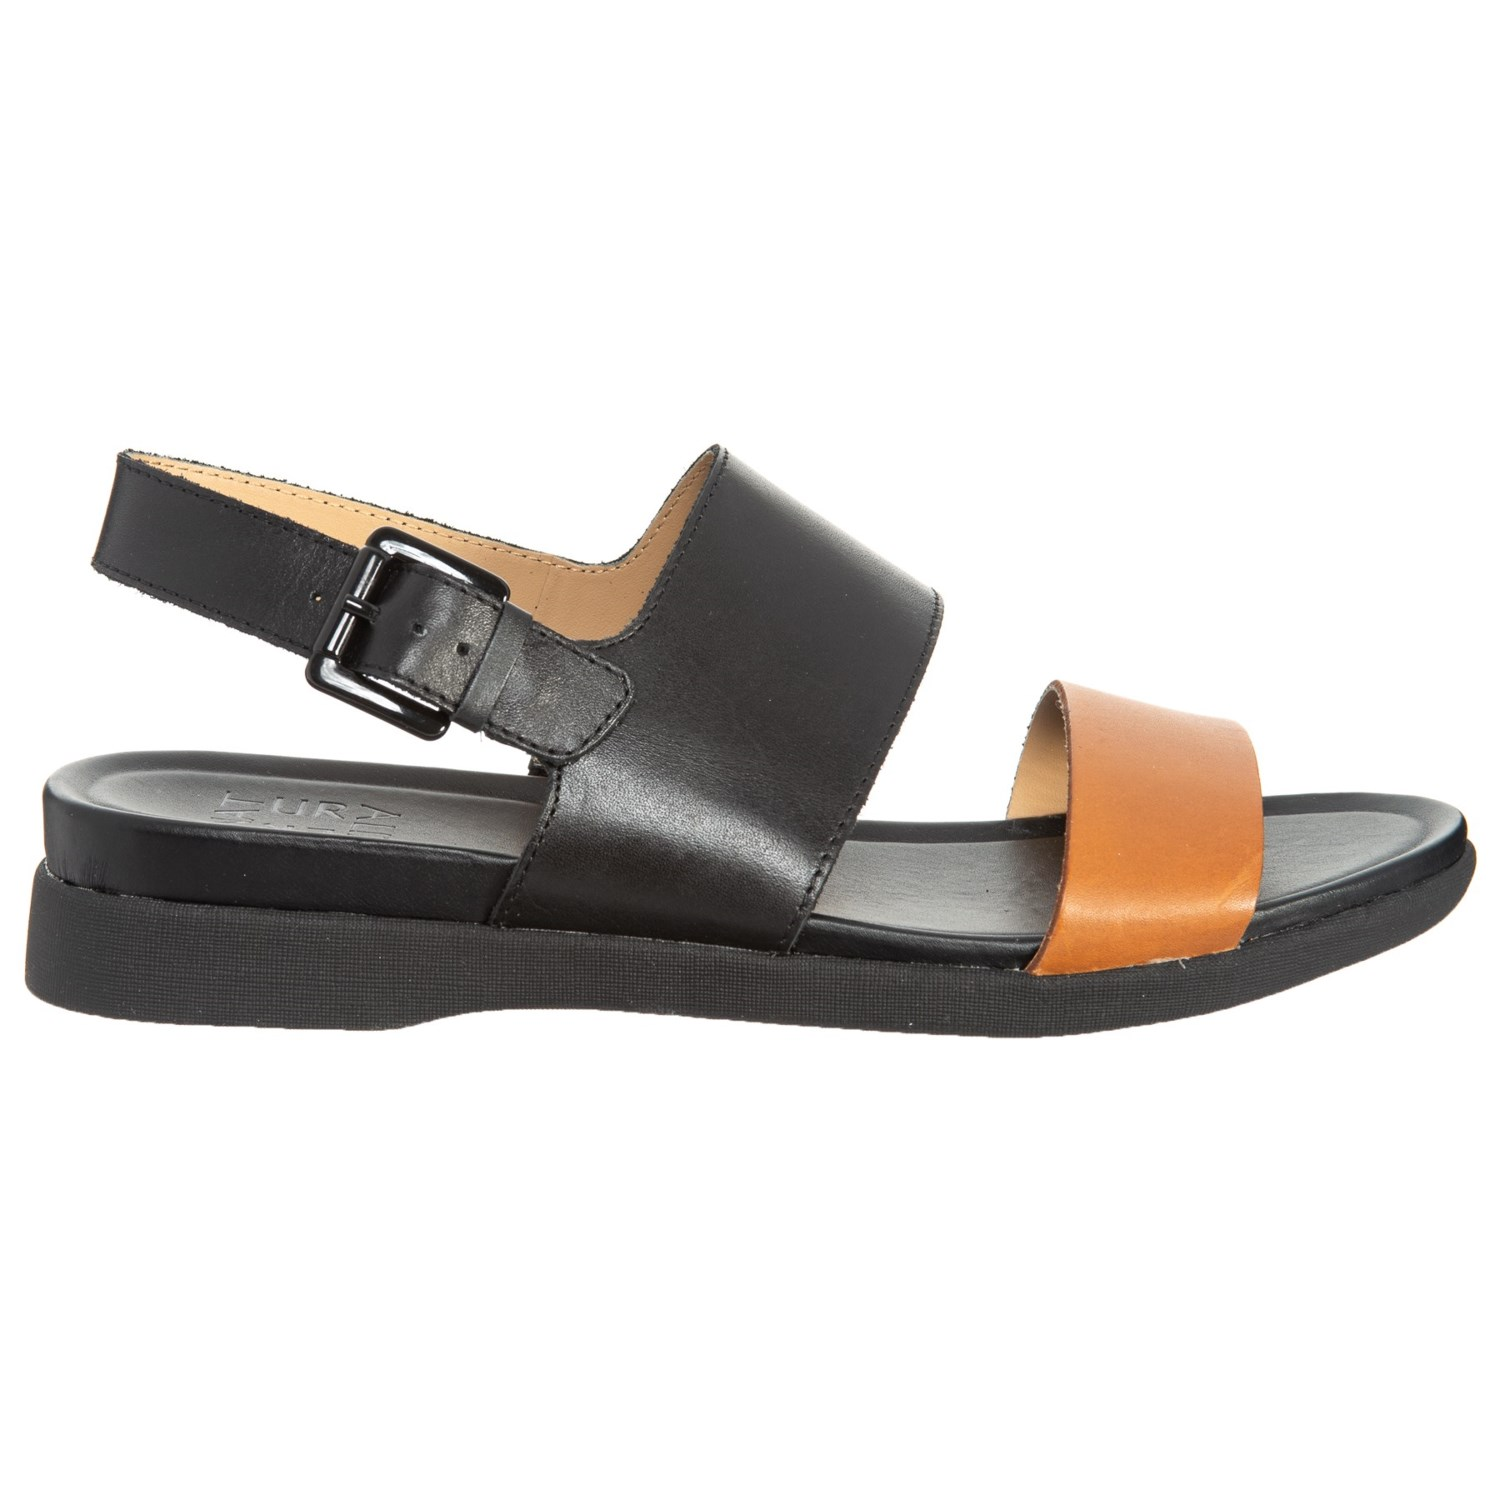 7d2c548d6aa5 Naturalizer Emory Sandals (For Women) - Save 72%